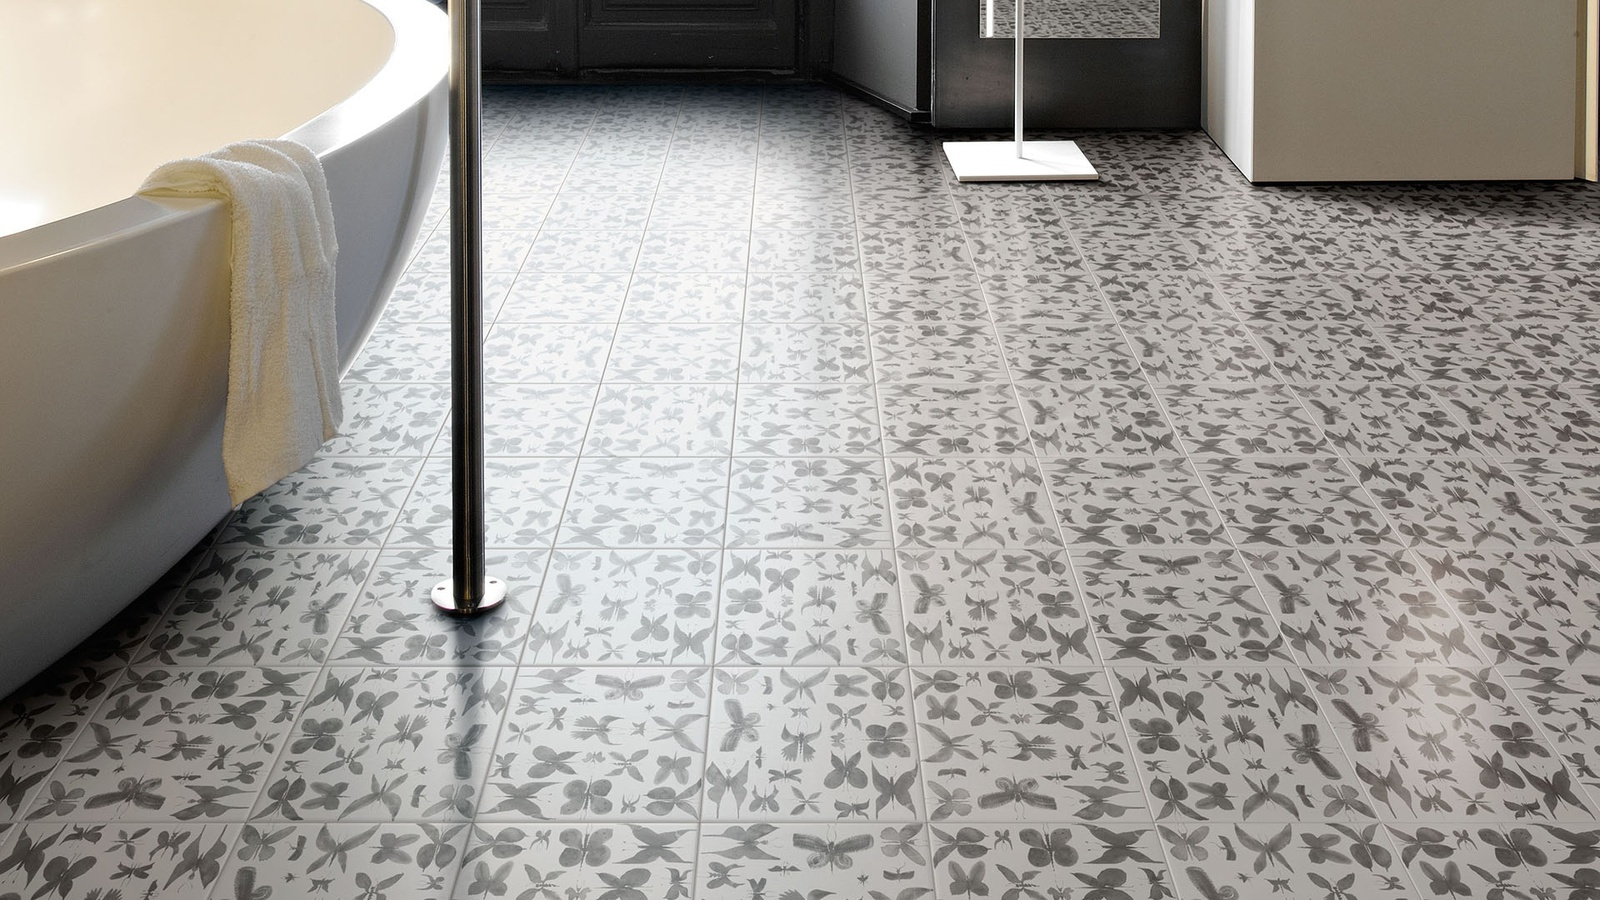 Choosing Floor Tiles for a Home Floor | Mytyles | All ...